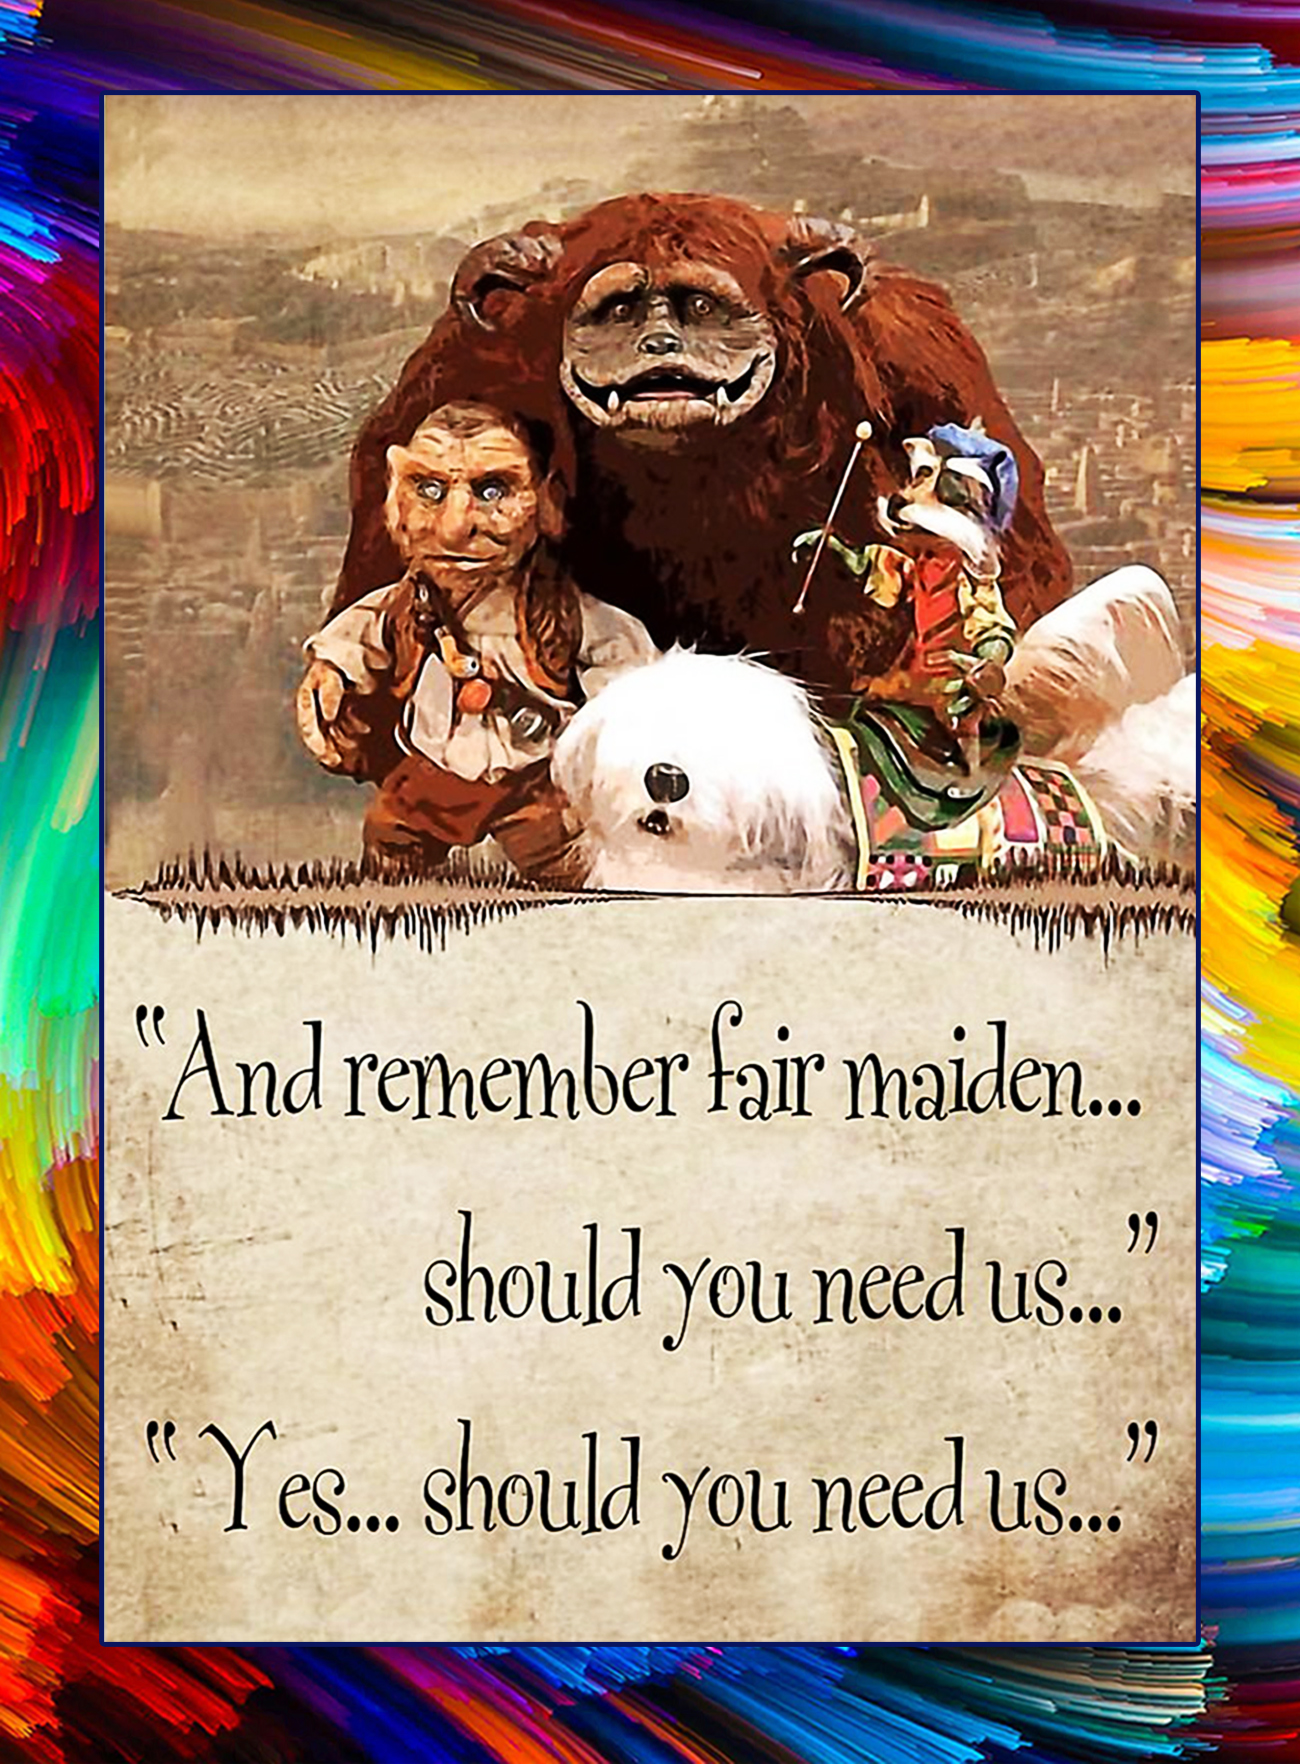 And remember fair maiden should you need us yes should you need us poster - A1